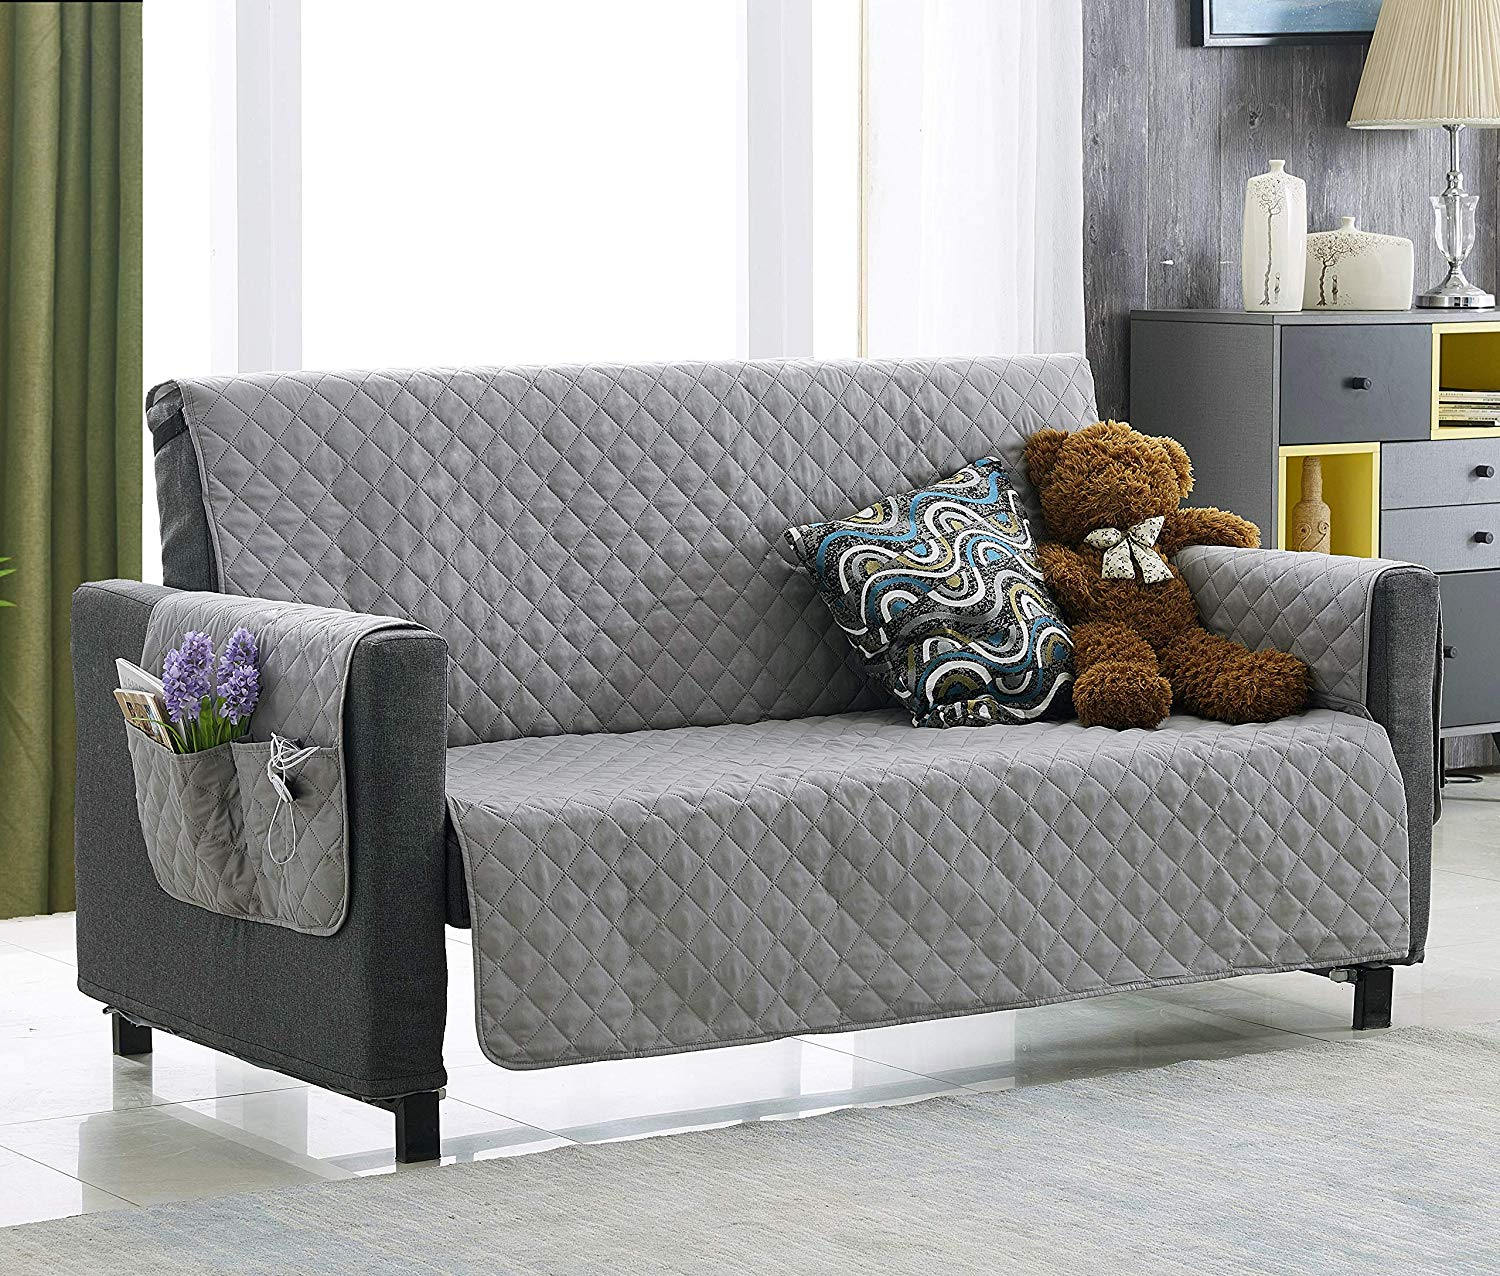 Argstar Couch Cover With Storage Pockets For Dogs Protector Sofa Slipcover Gray Kitchen Sofa Ideas Of Kitchen Slipcovered Sofa Couch Covers Oversized Couch